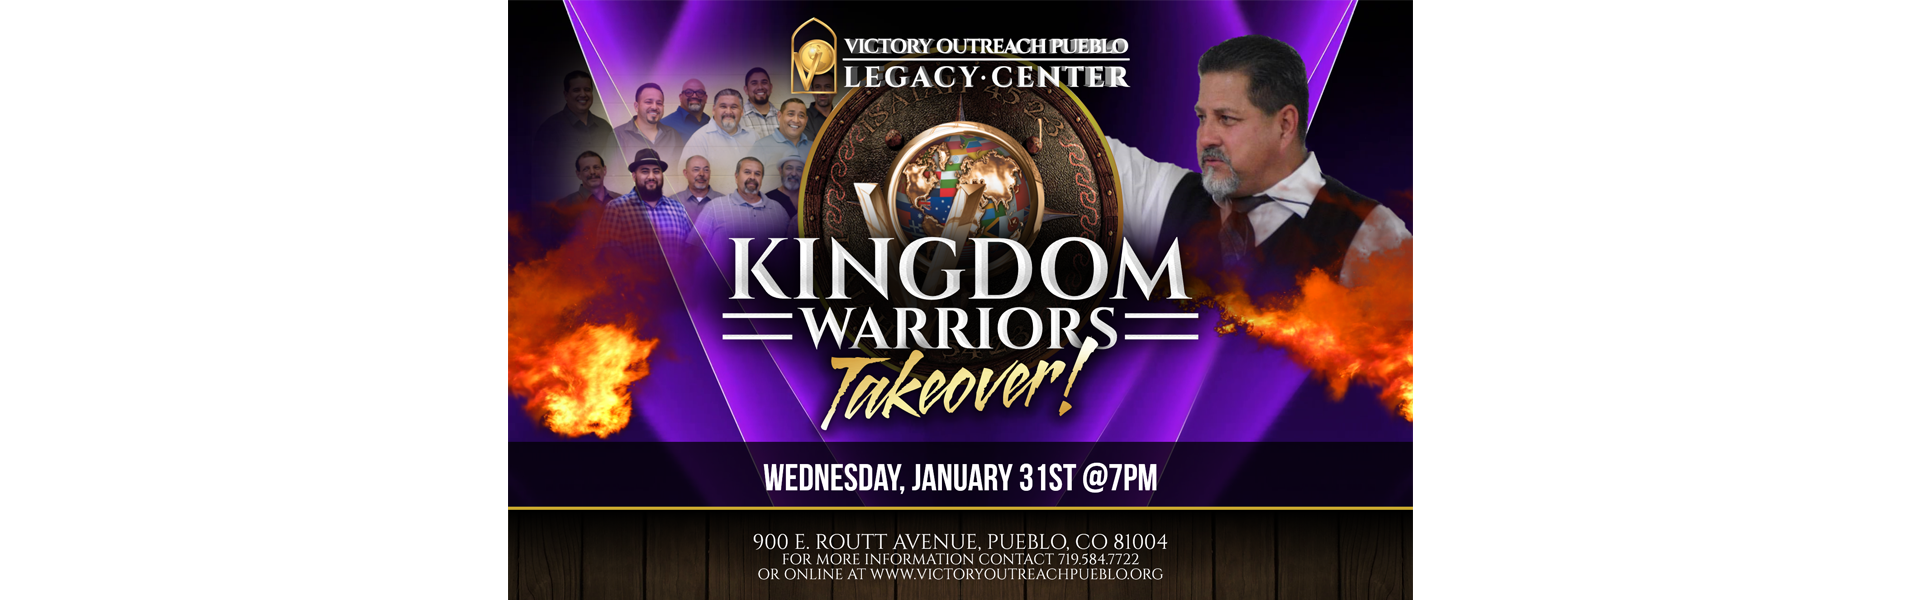 Kingdom Warriors Takeover 1/31/18